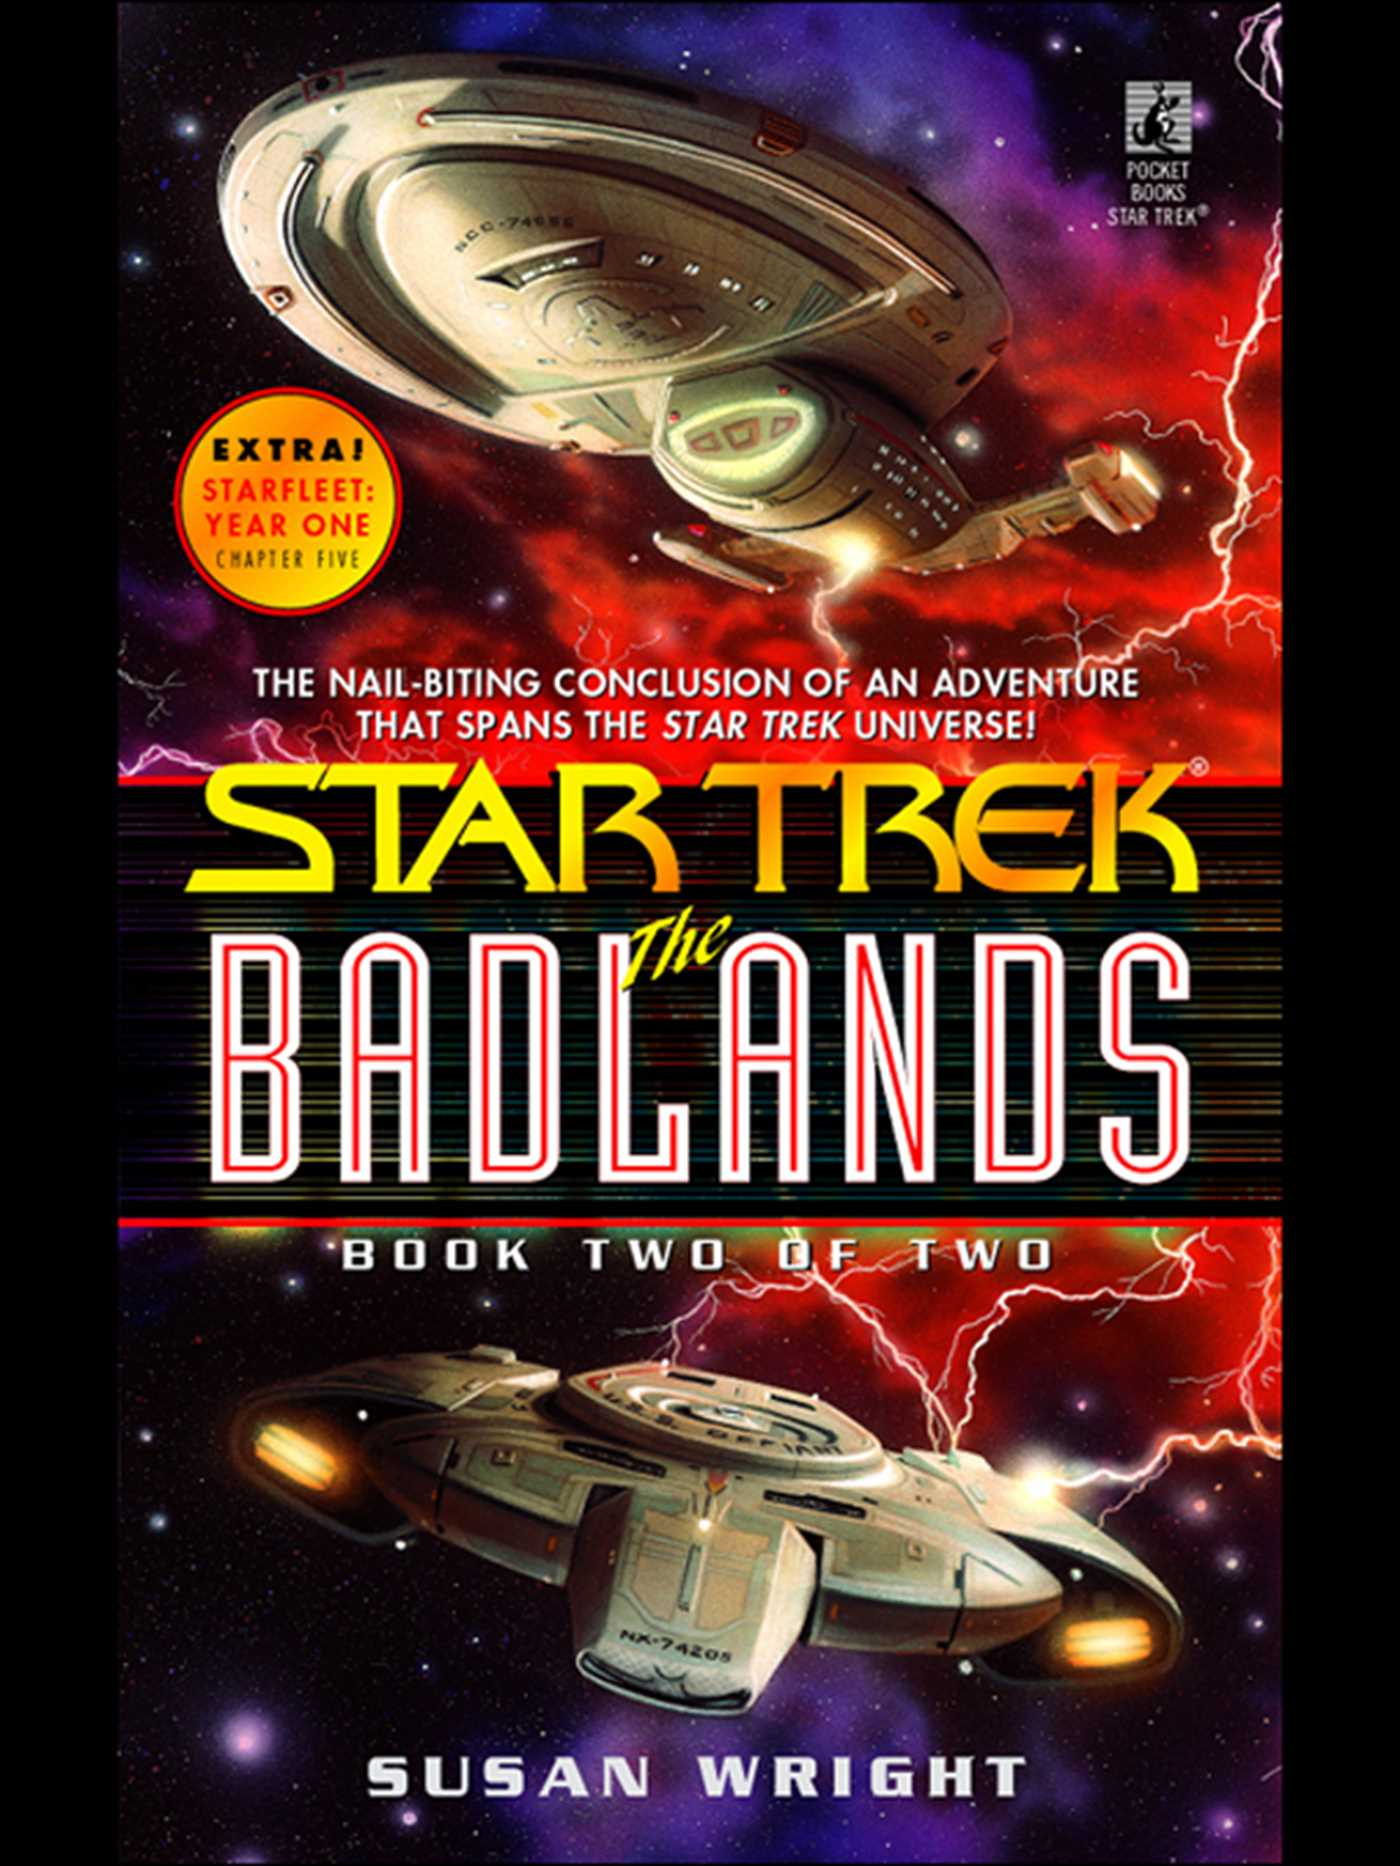 The-badlands-book-two-9780743406758_hr